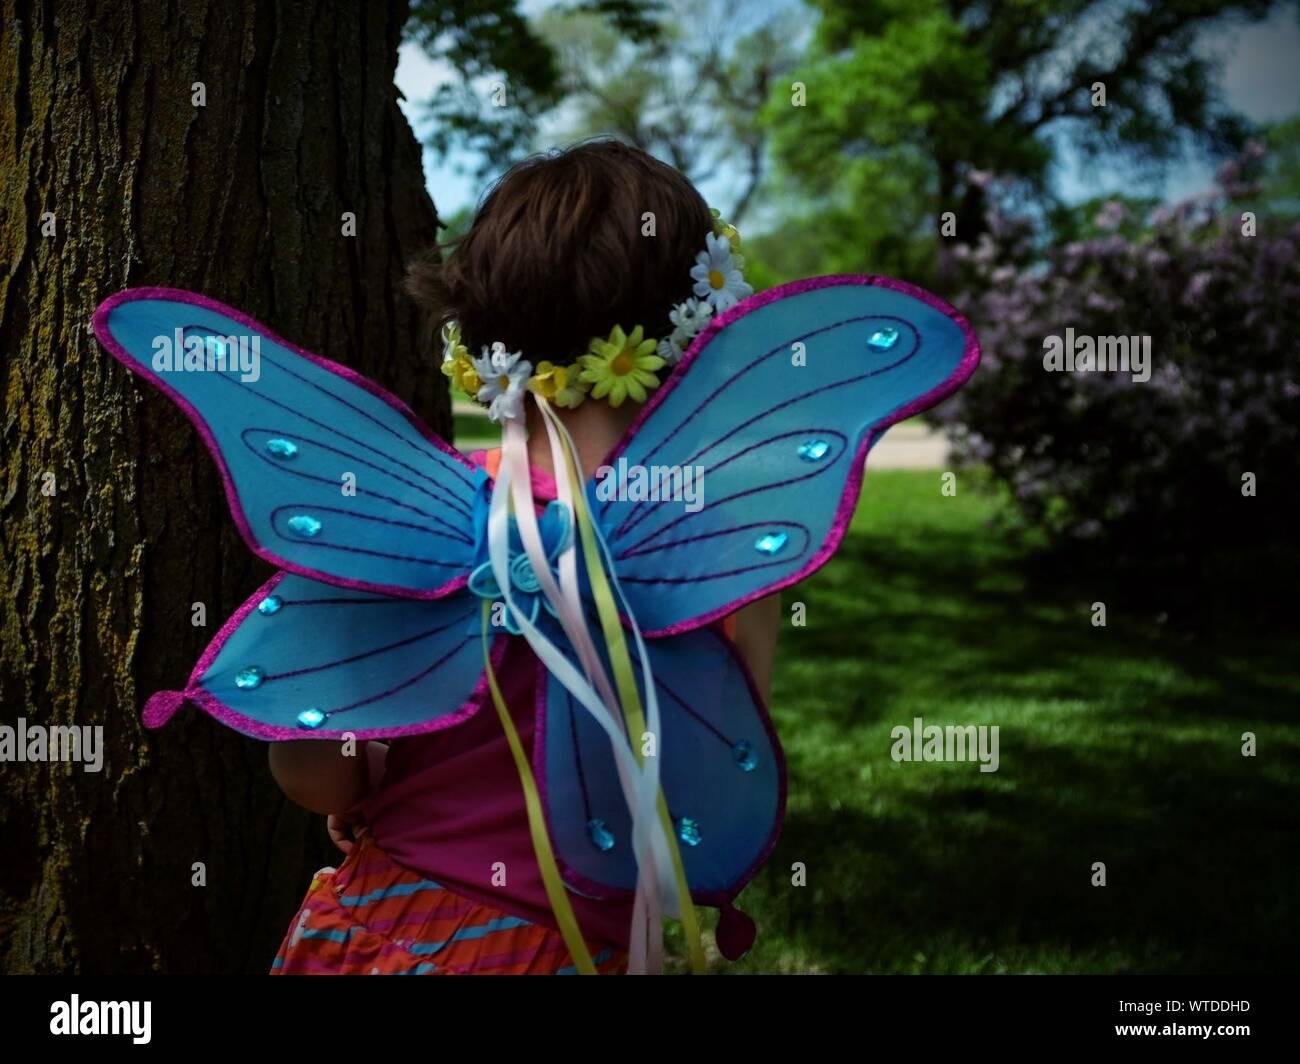 Rear View Of Girl Wearing Butterfly Costume By Tree Trunk Stock Photo